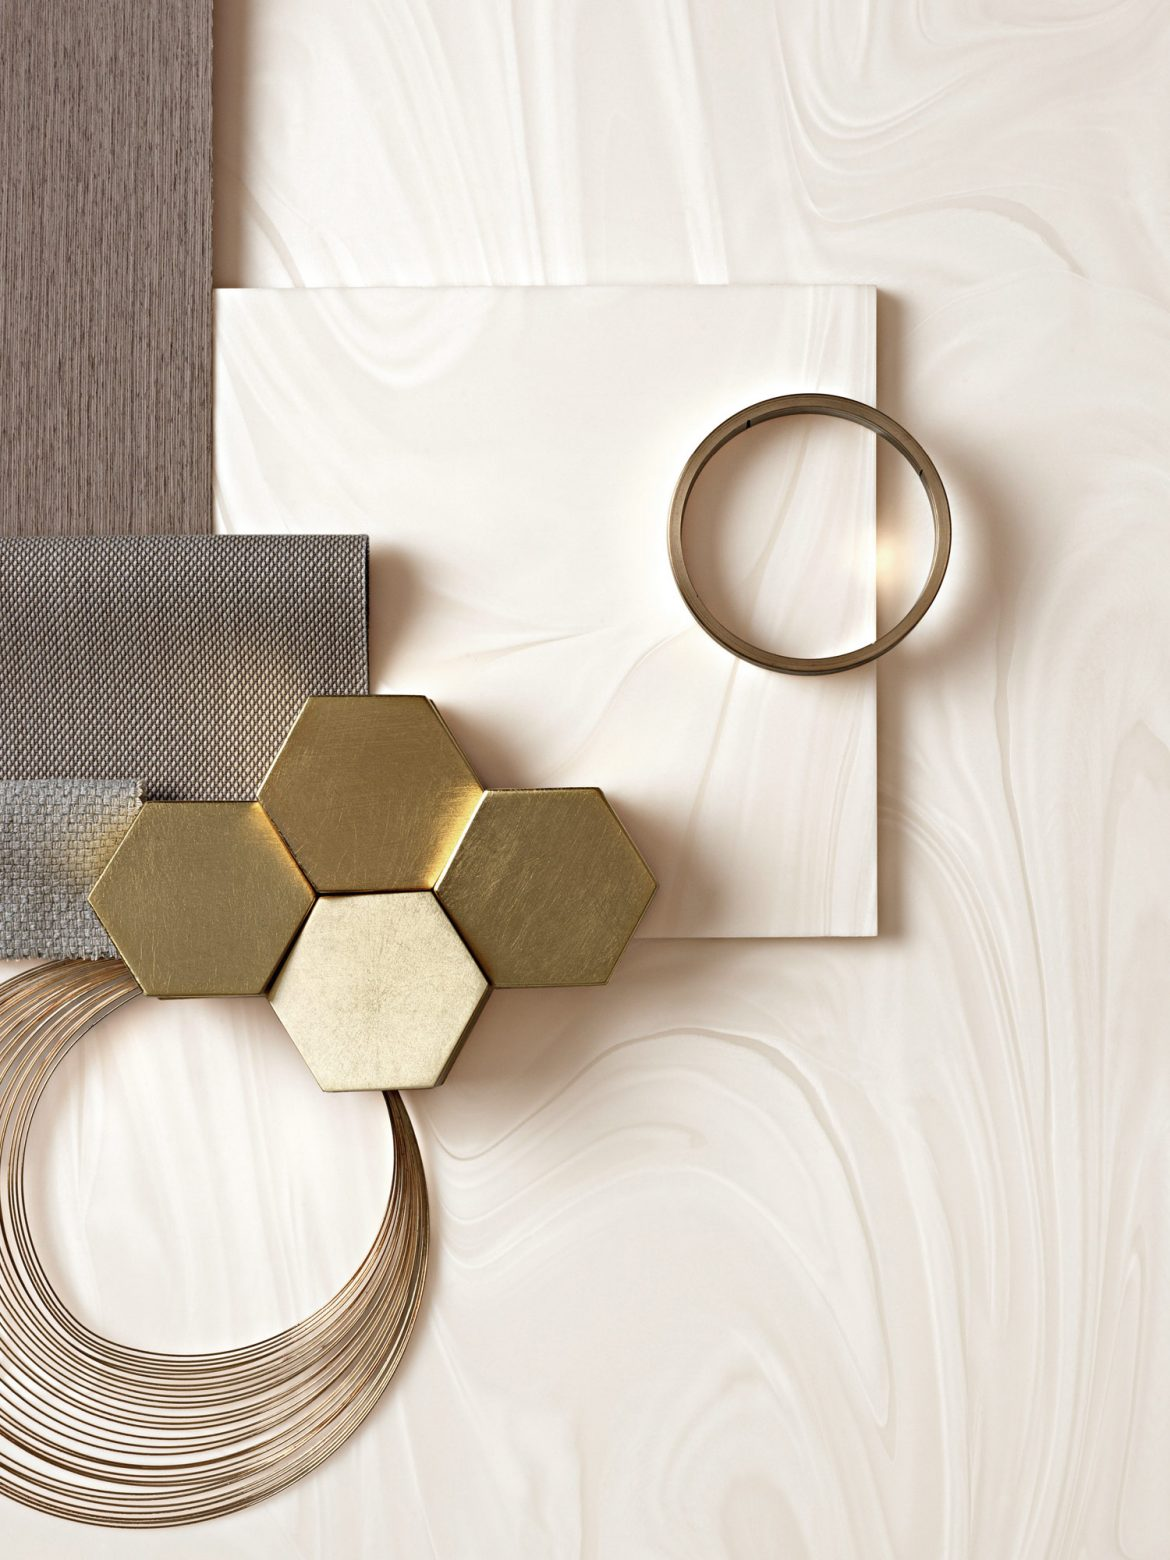 materials and finishes Materials And Finishes: Discover Here The Trends For 2021  materials and finishes discover here the trends for 2021 8